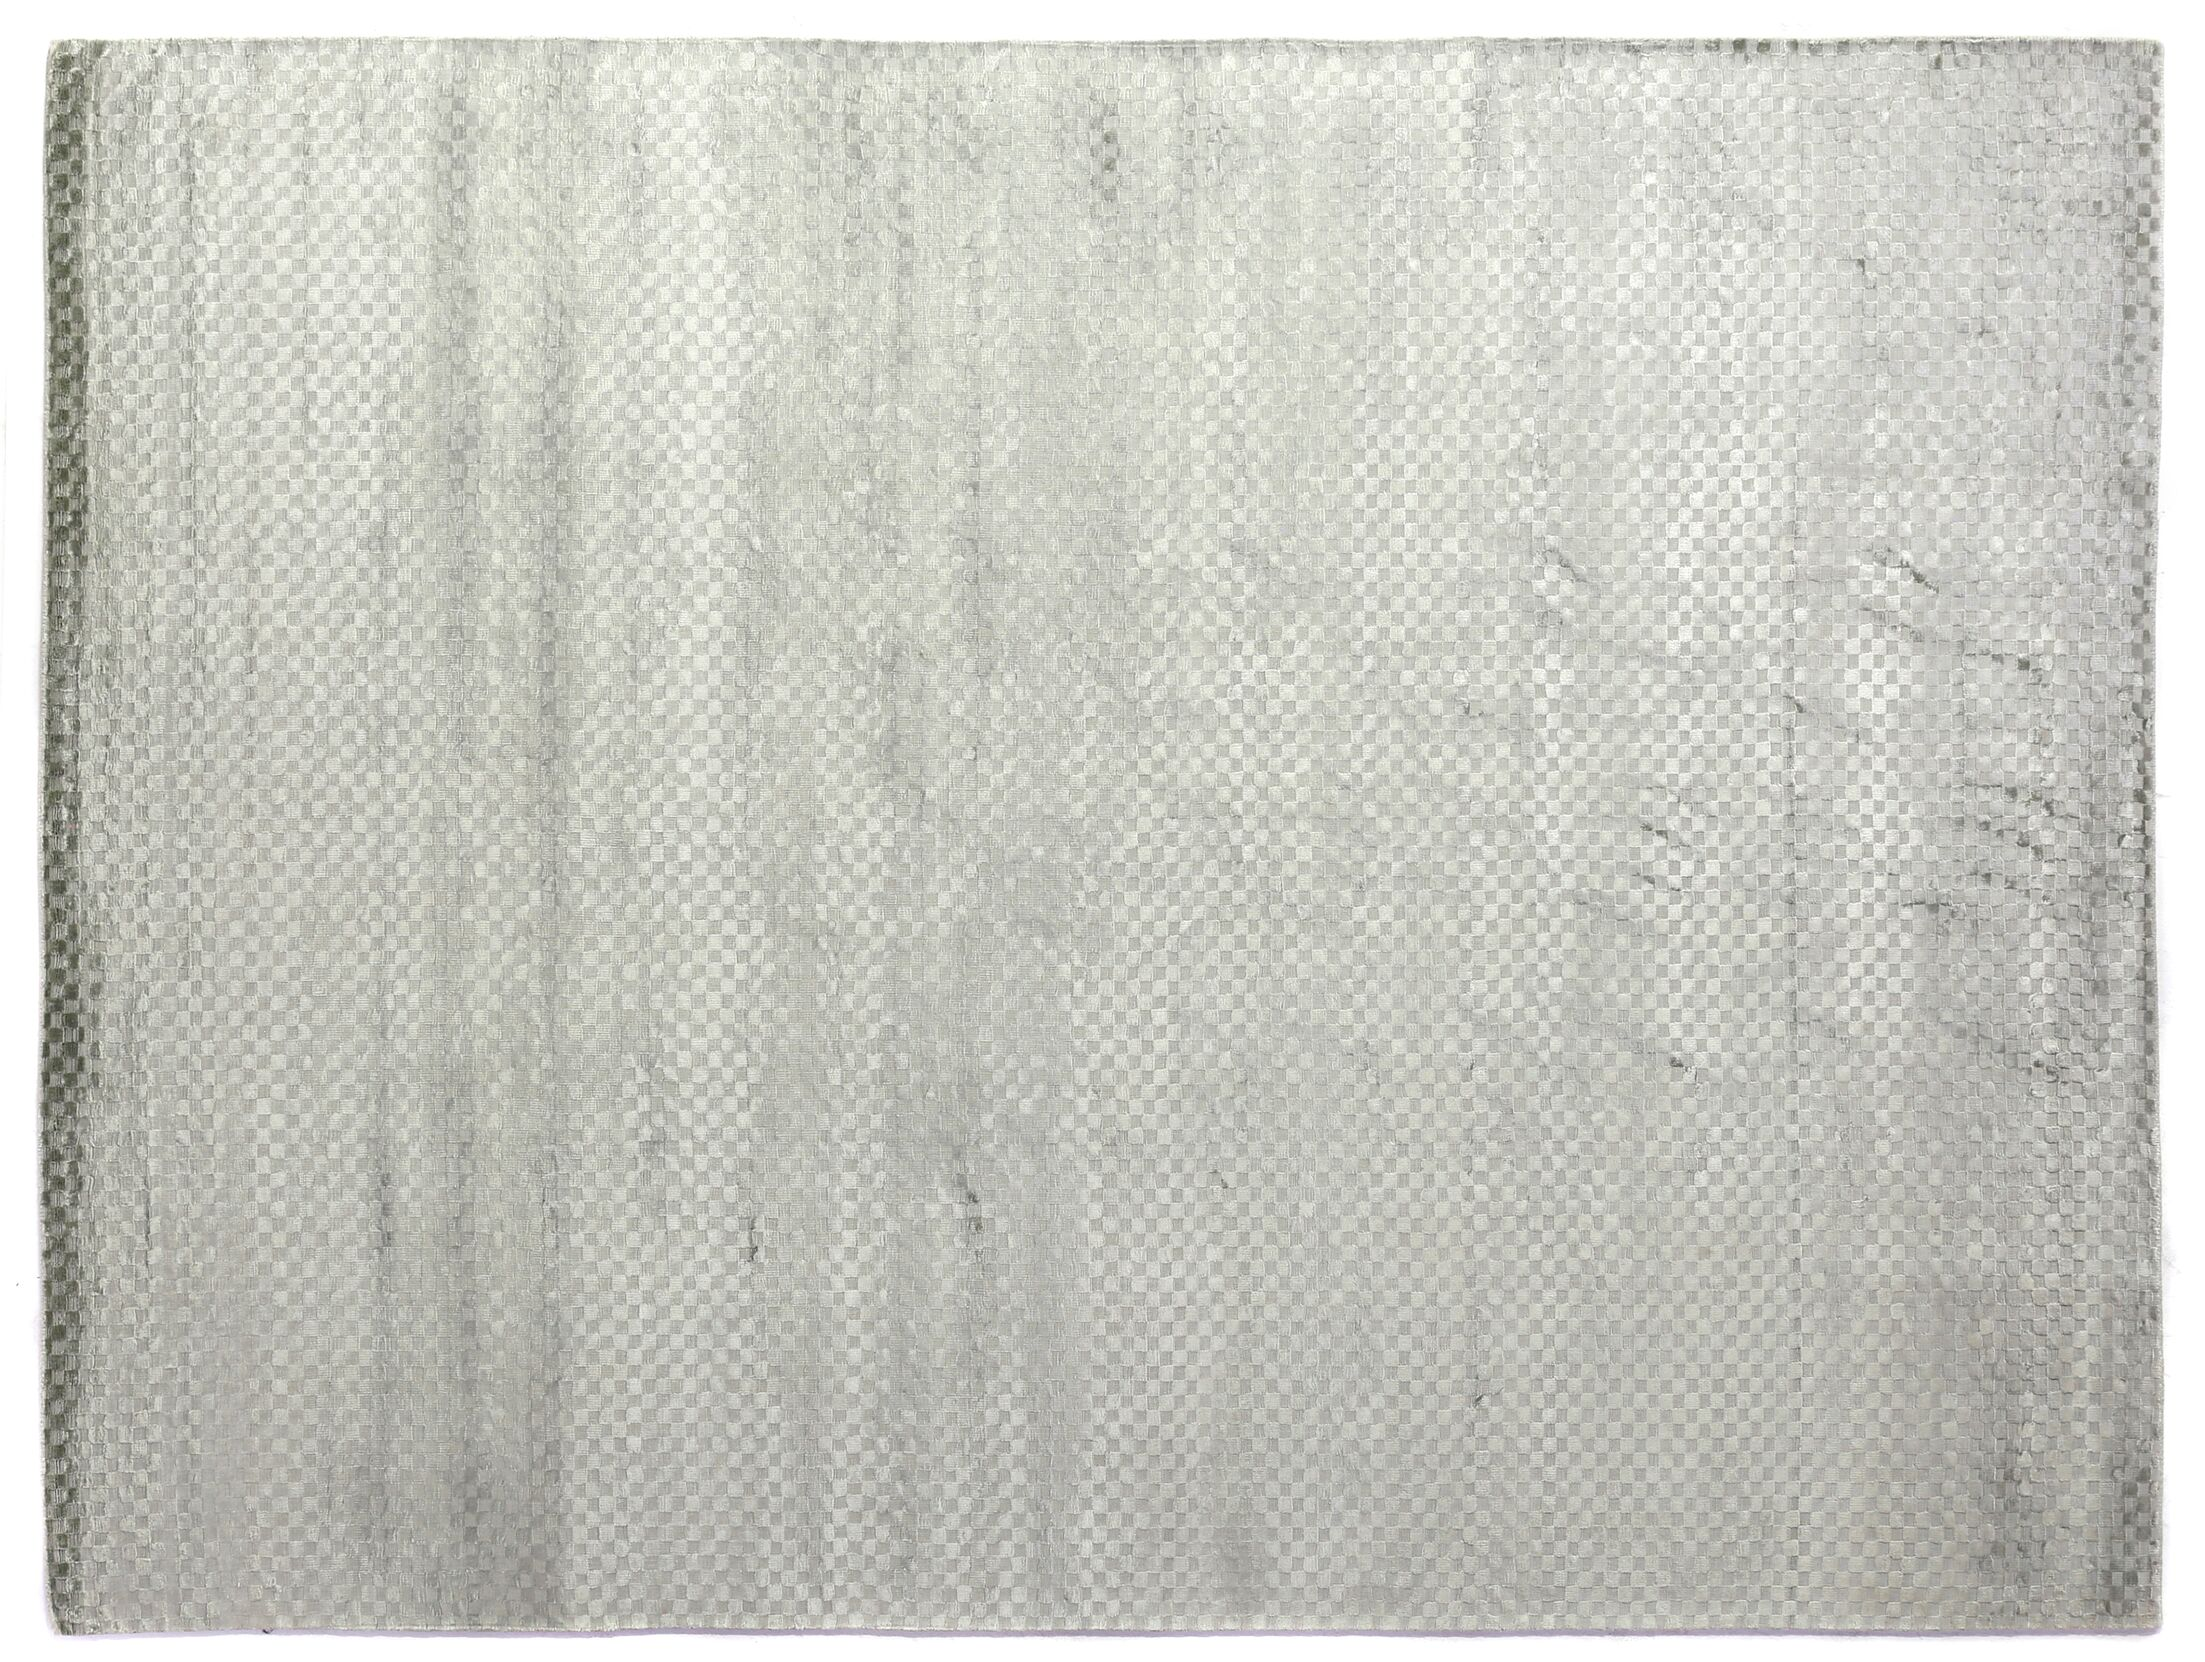 Dove Oxford Hand-Woven Gray Area Rug Rug Size: 12' x 15'